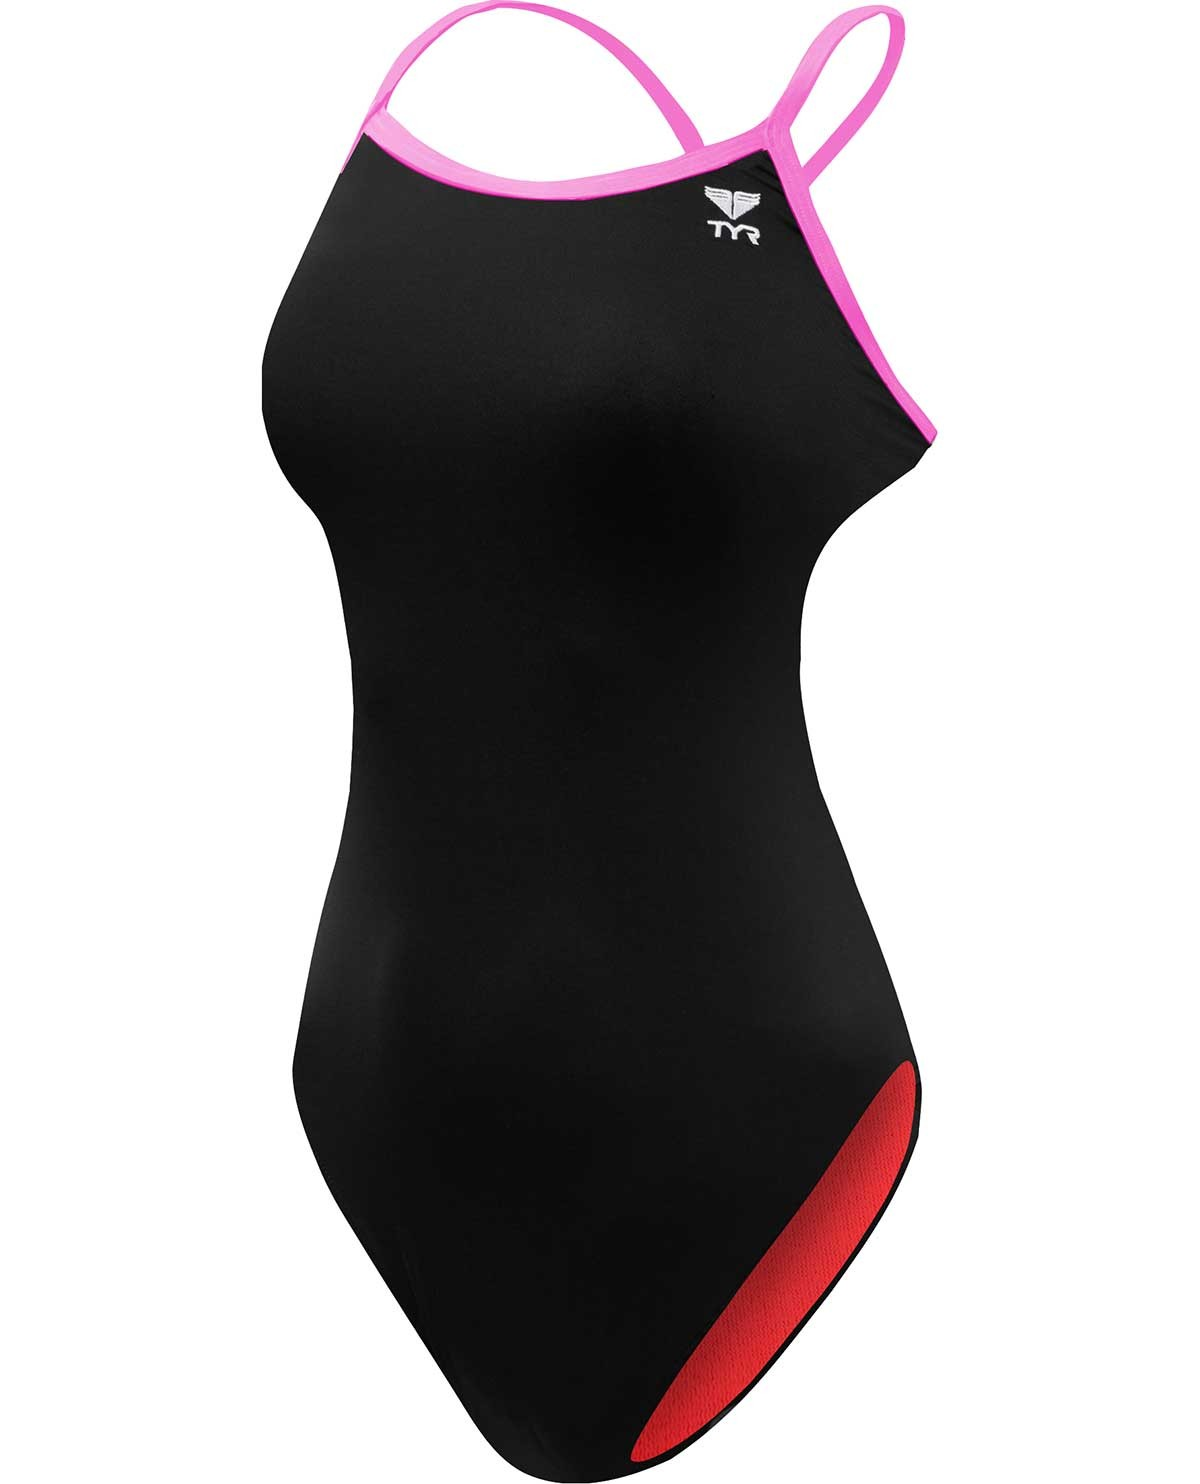 978fe1f28f Holiday Gifts for Women - TYR Women's Solid Trinityfit Swimsuit ...